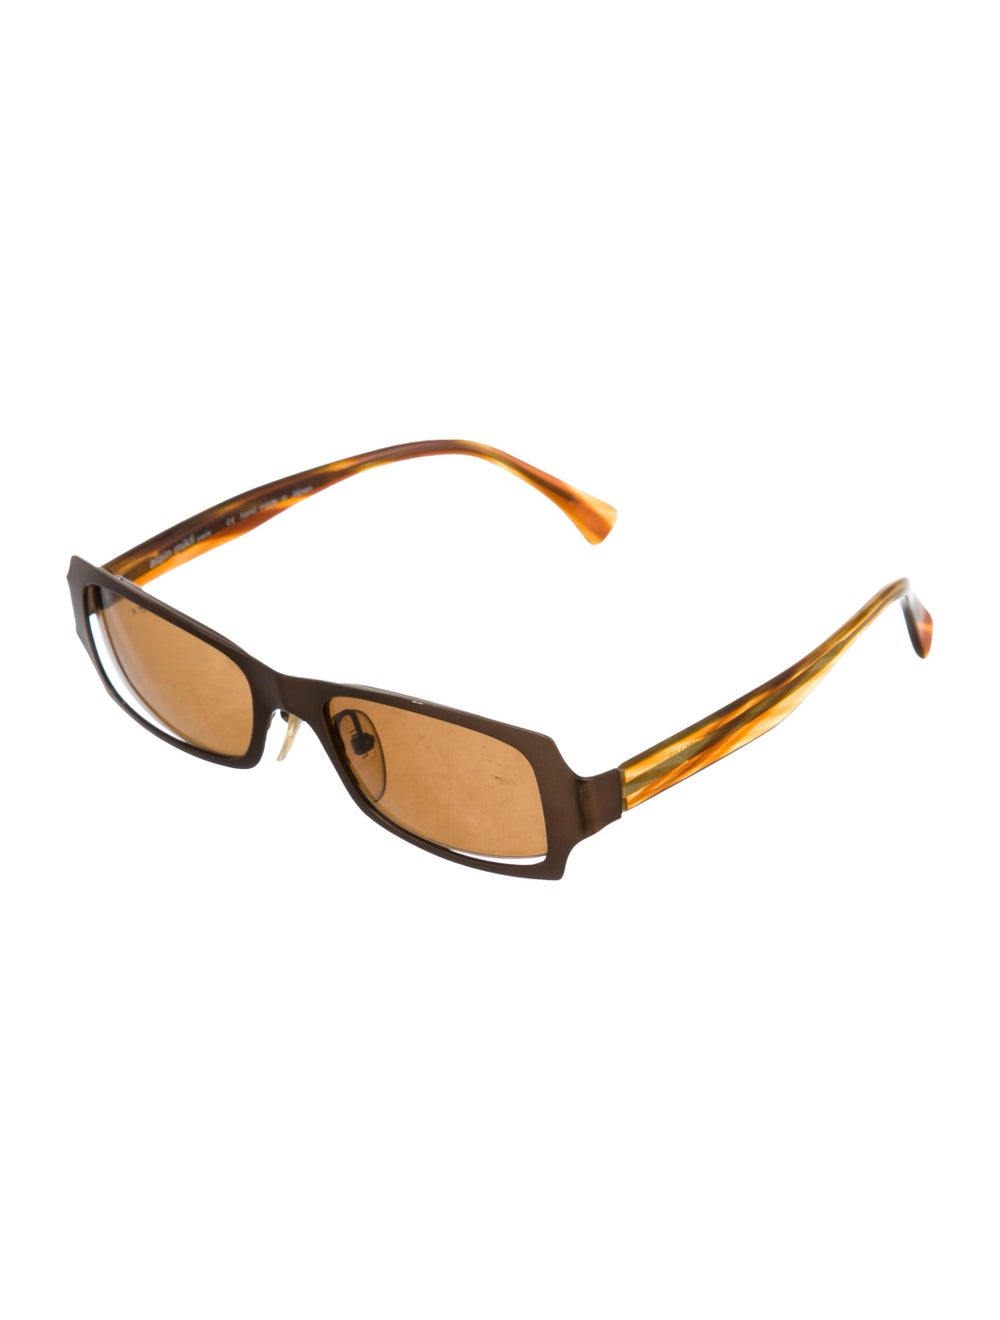 Alain Mikli Tinted Narrow Sunglasses Brown - image 2